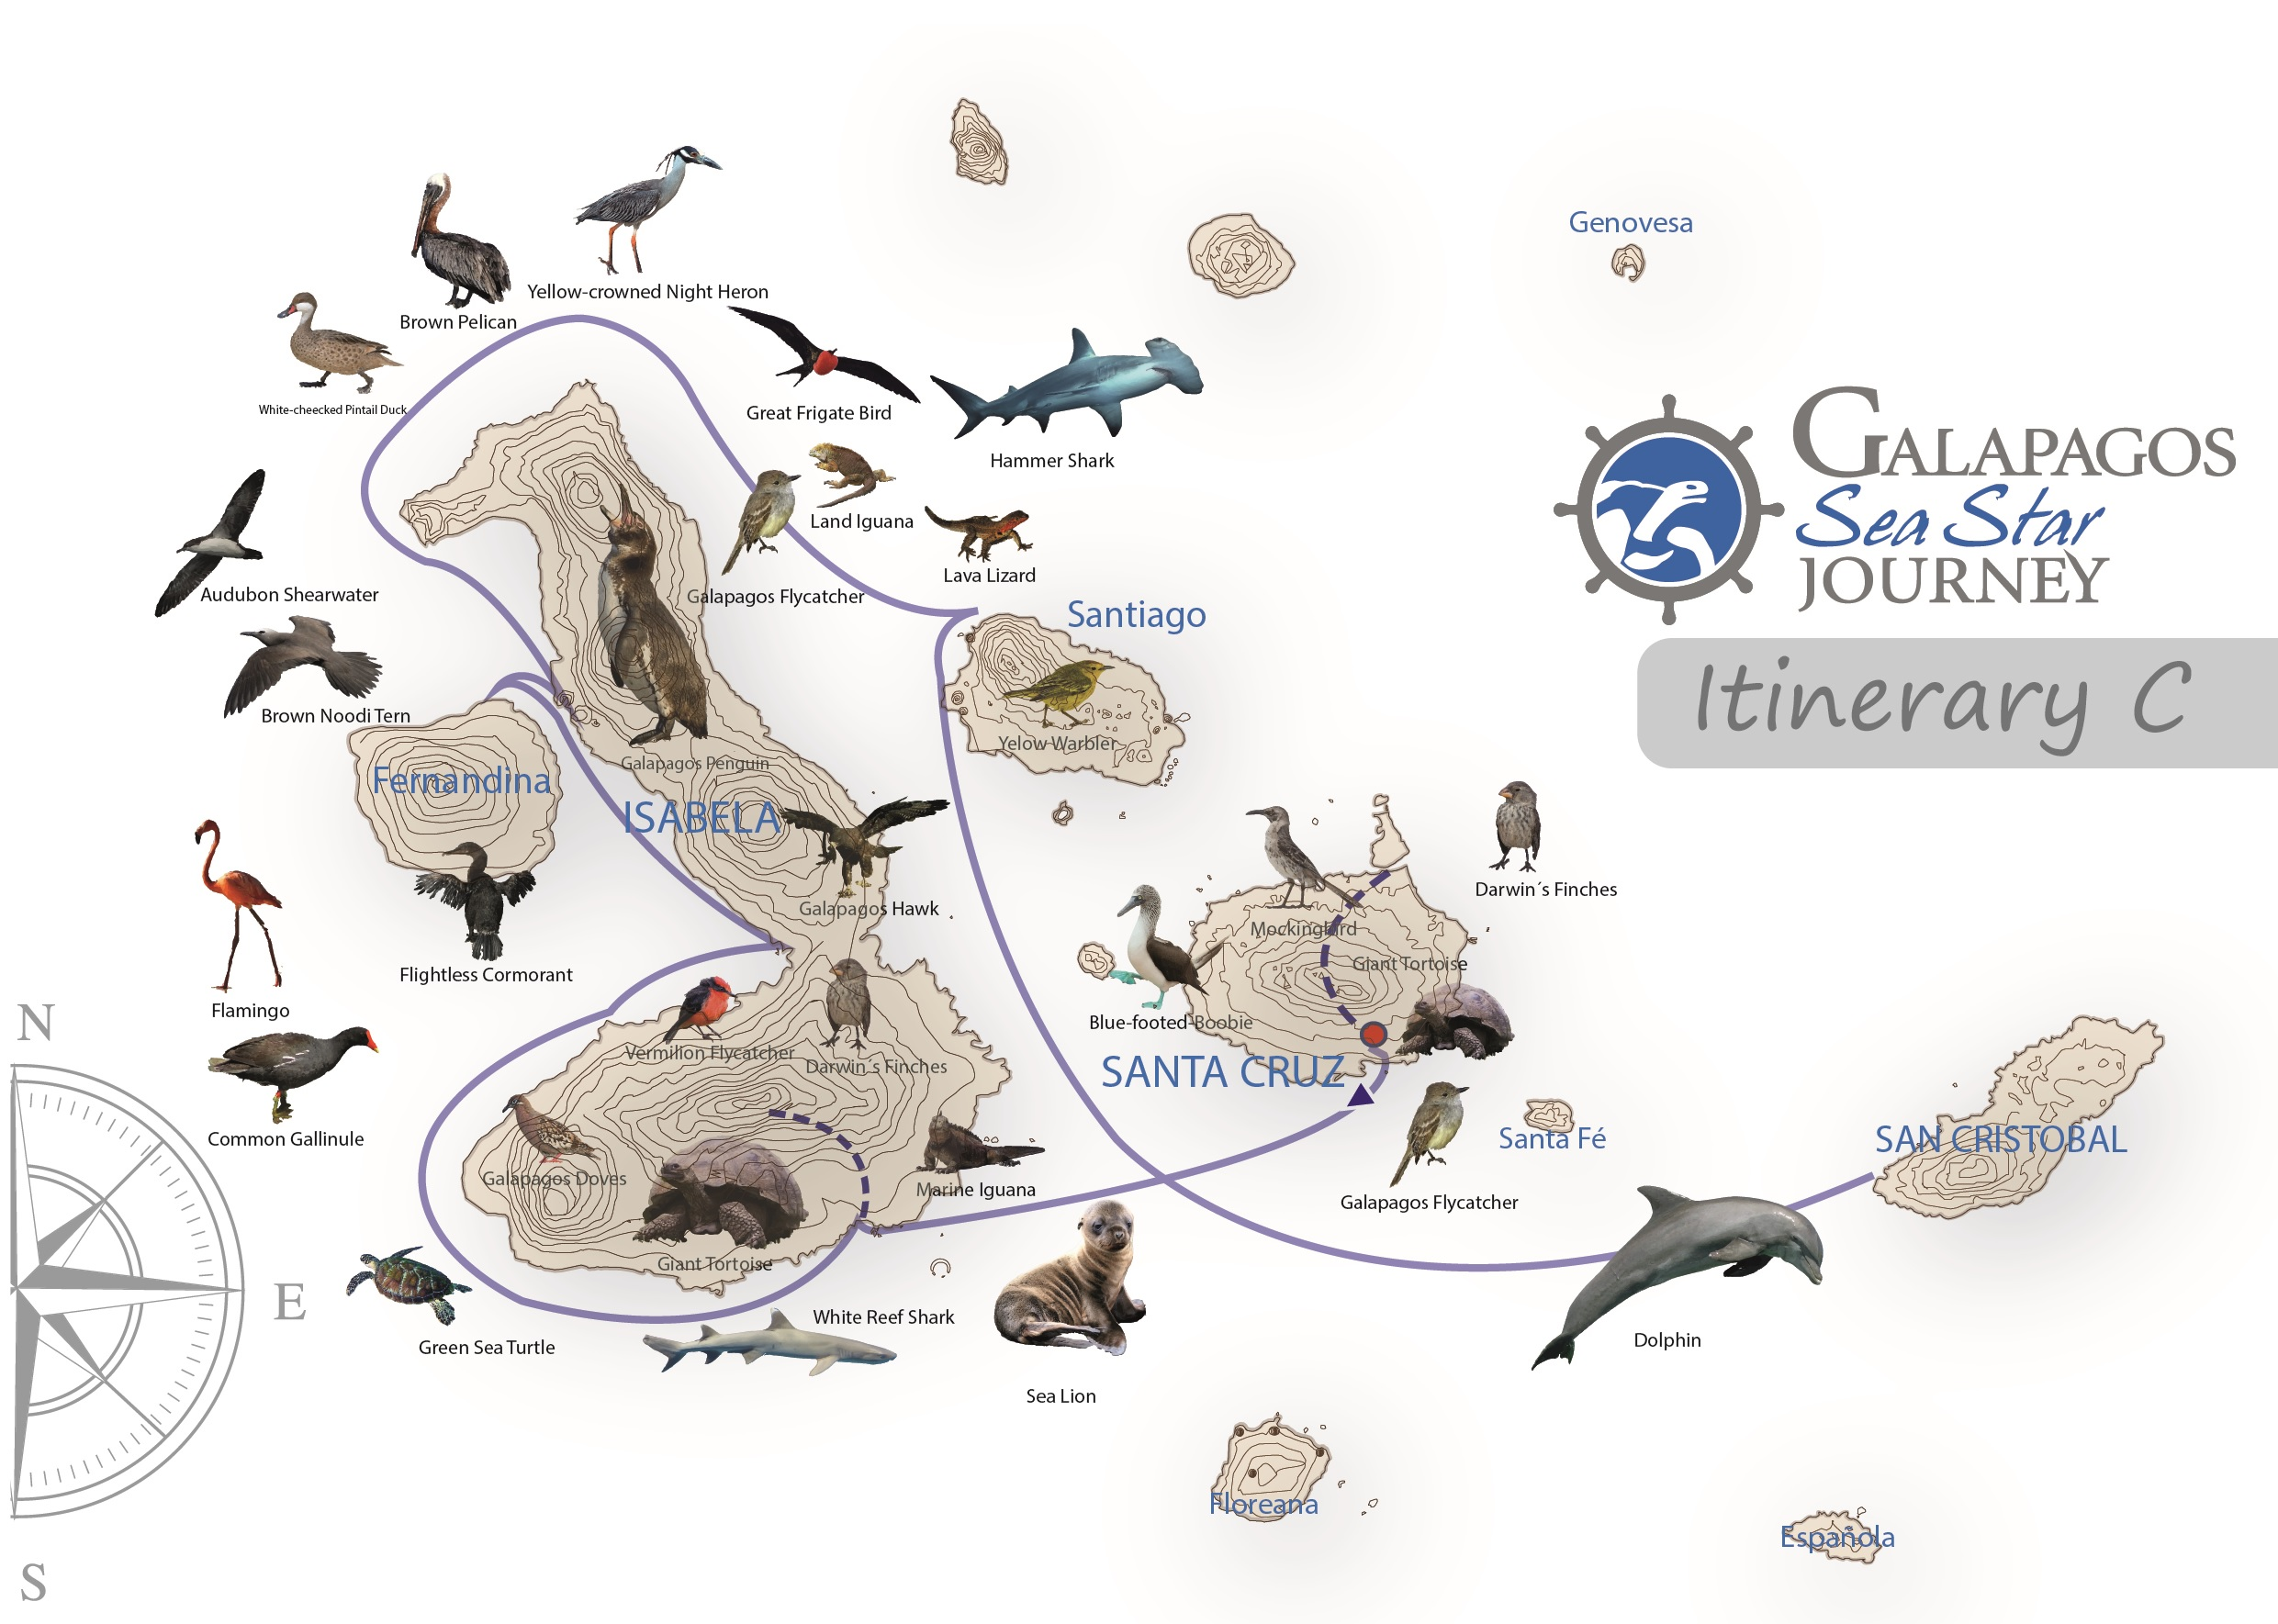 Galapagos Sea Star Journey - Itinerary C 6 days Wildlife Map